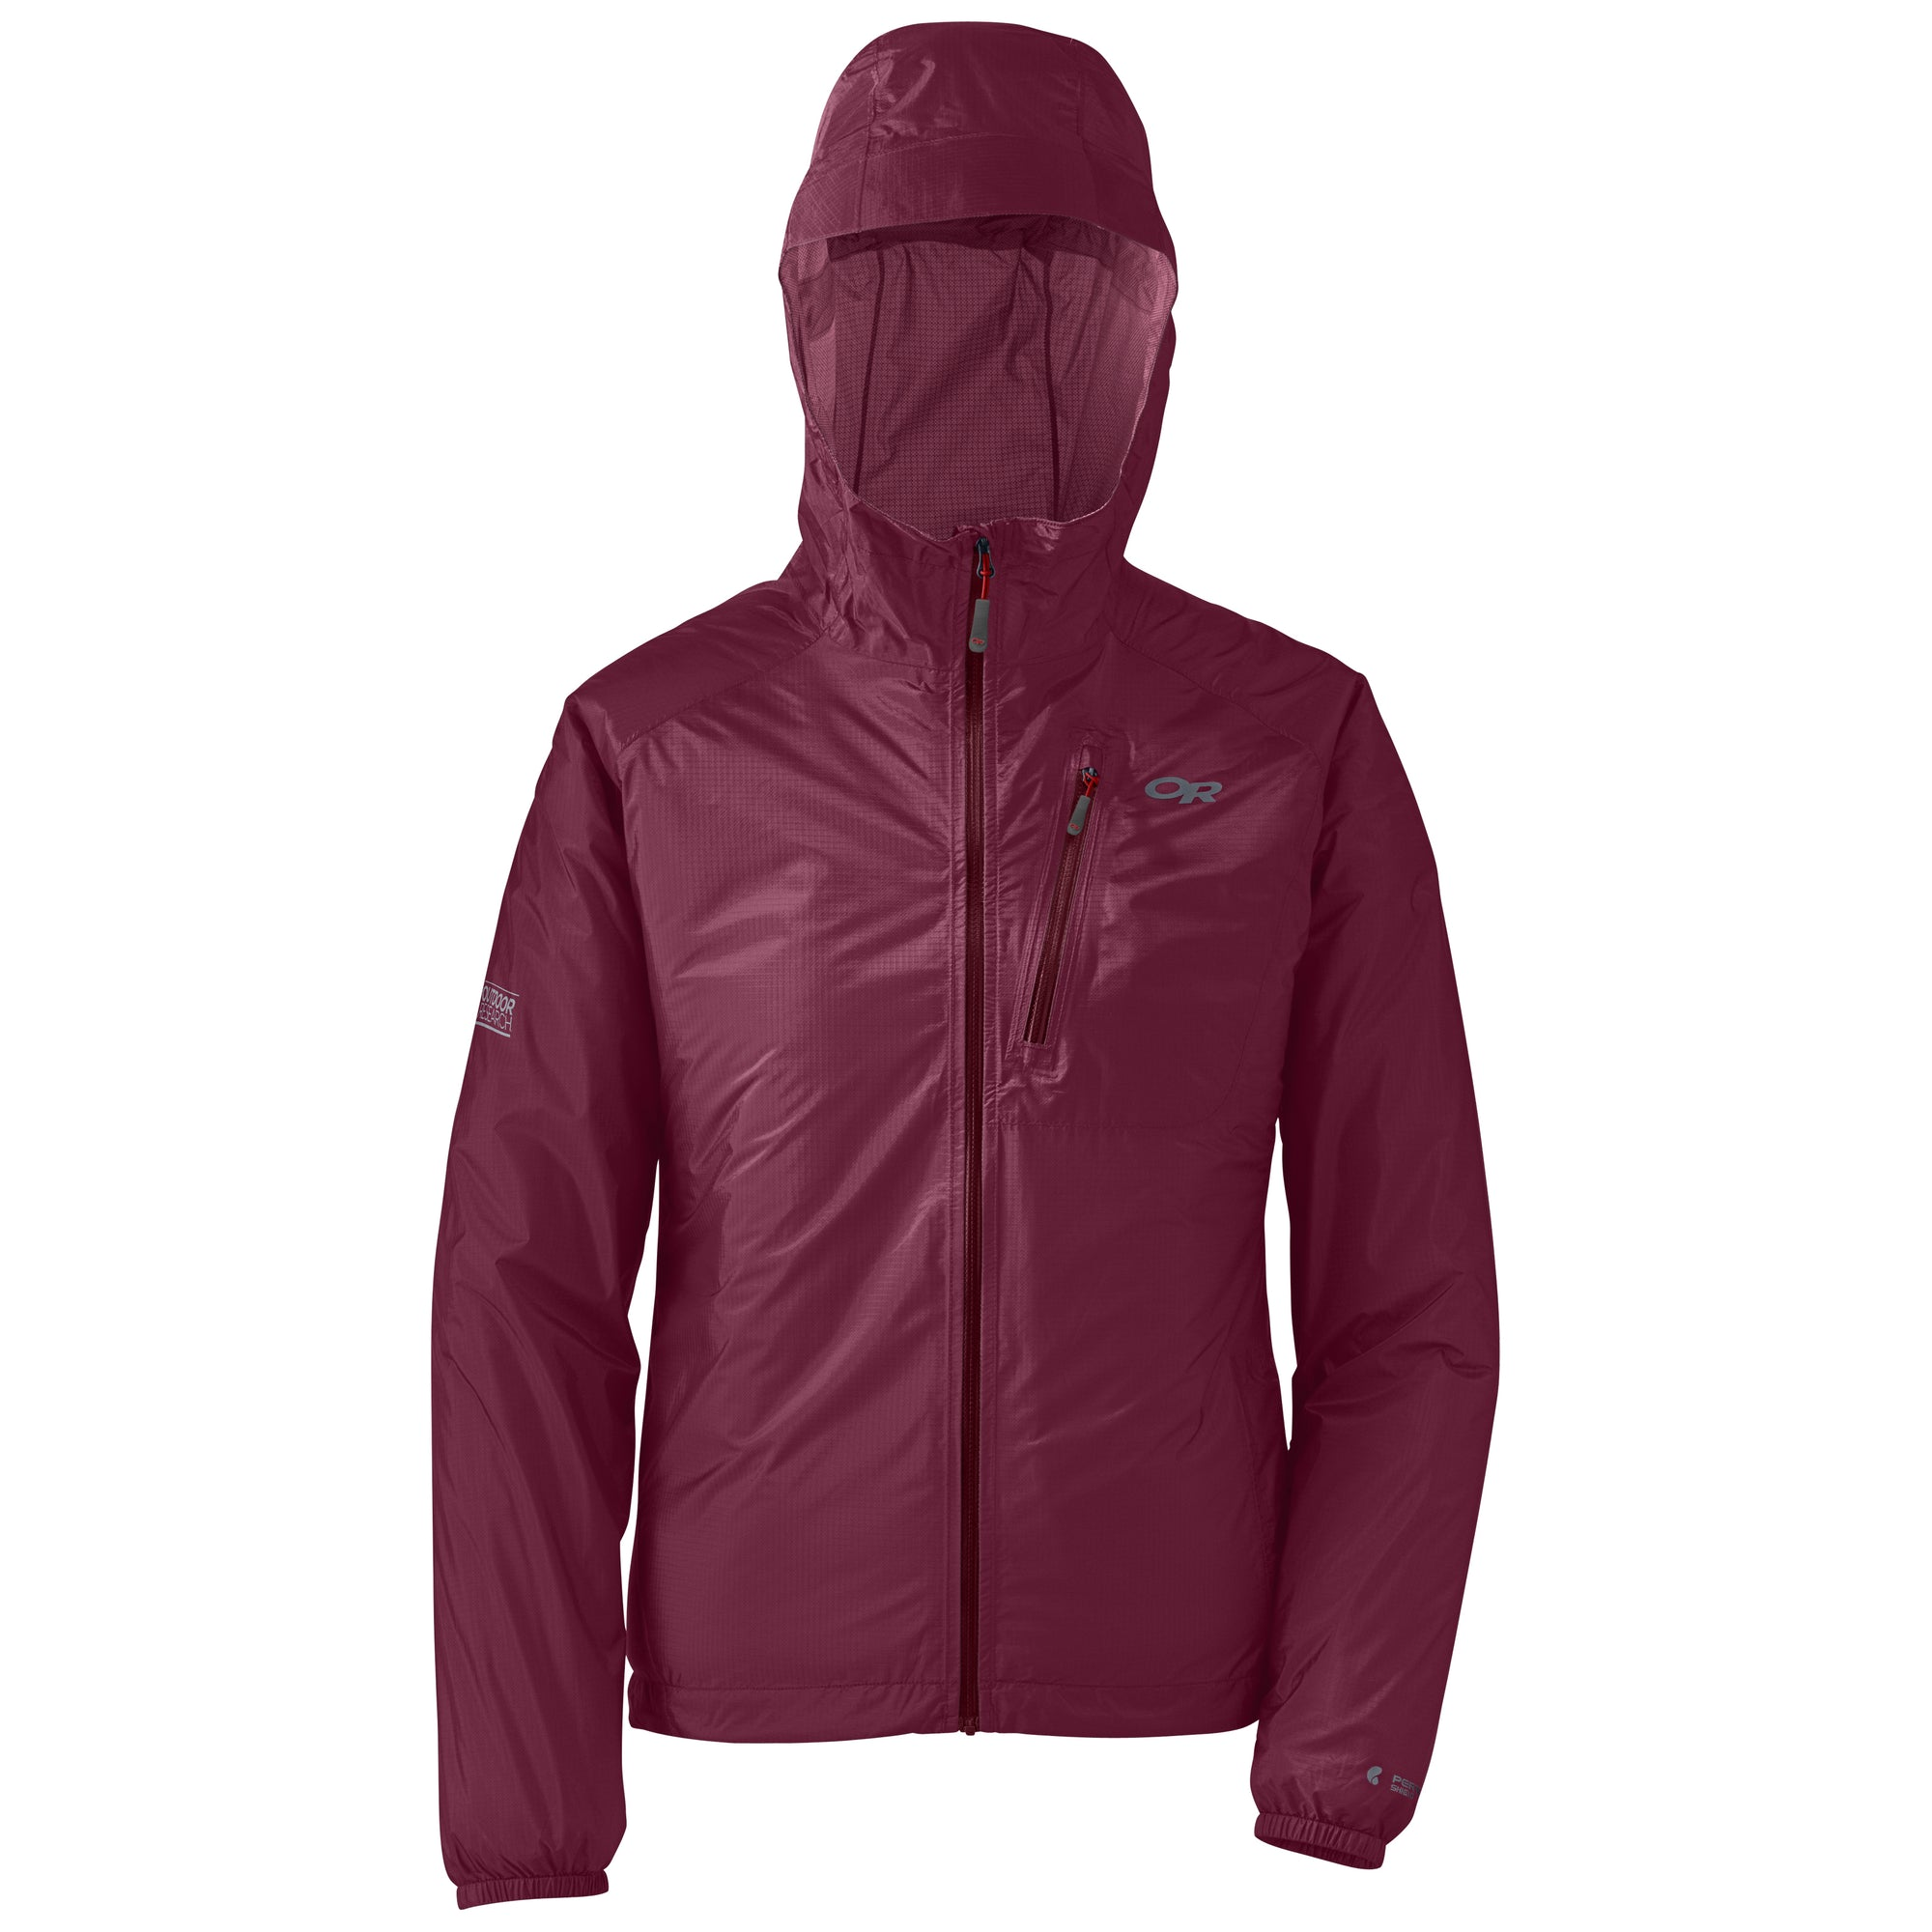 Outdoor Research Helium II Jacket Women